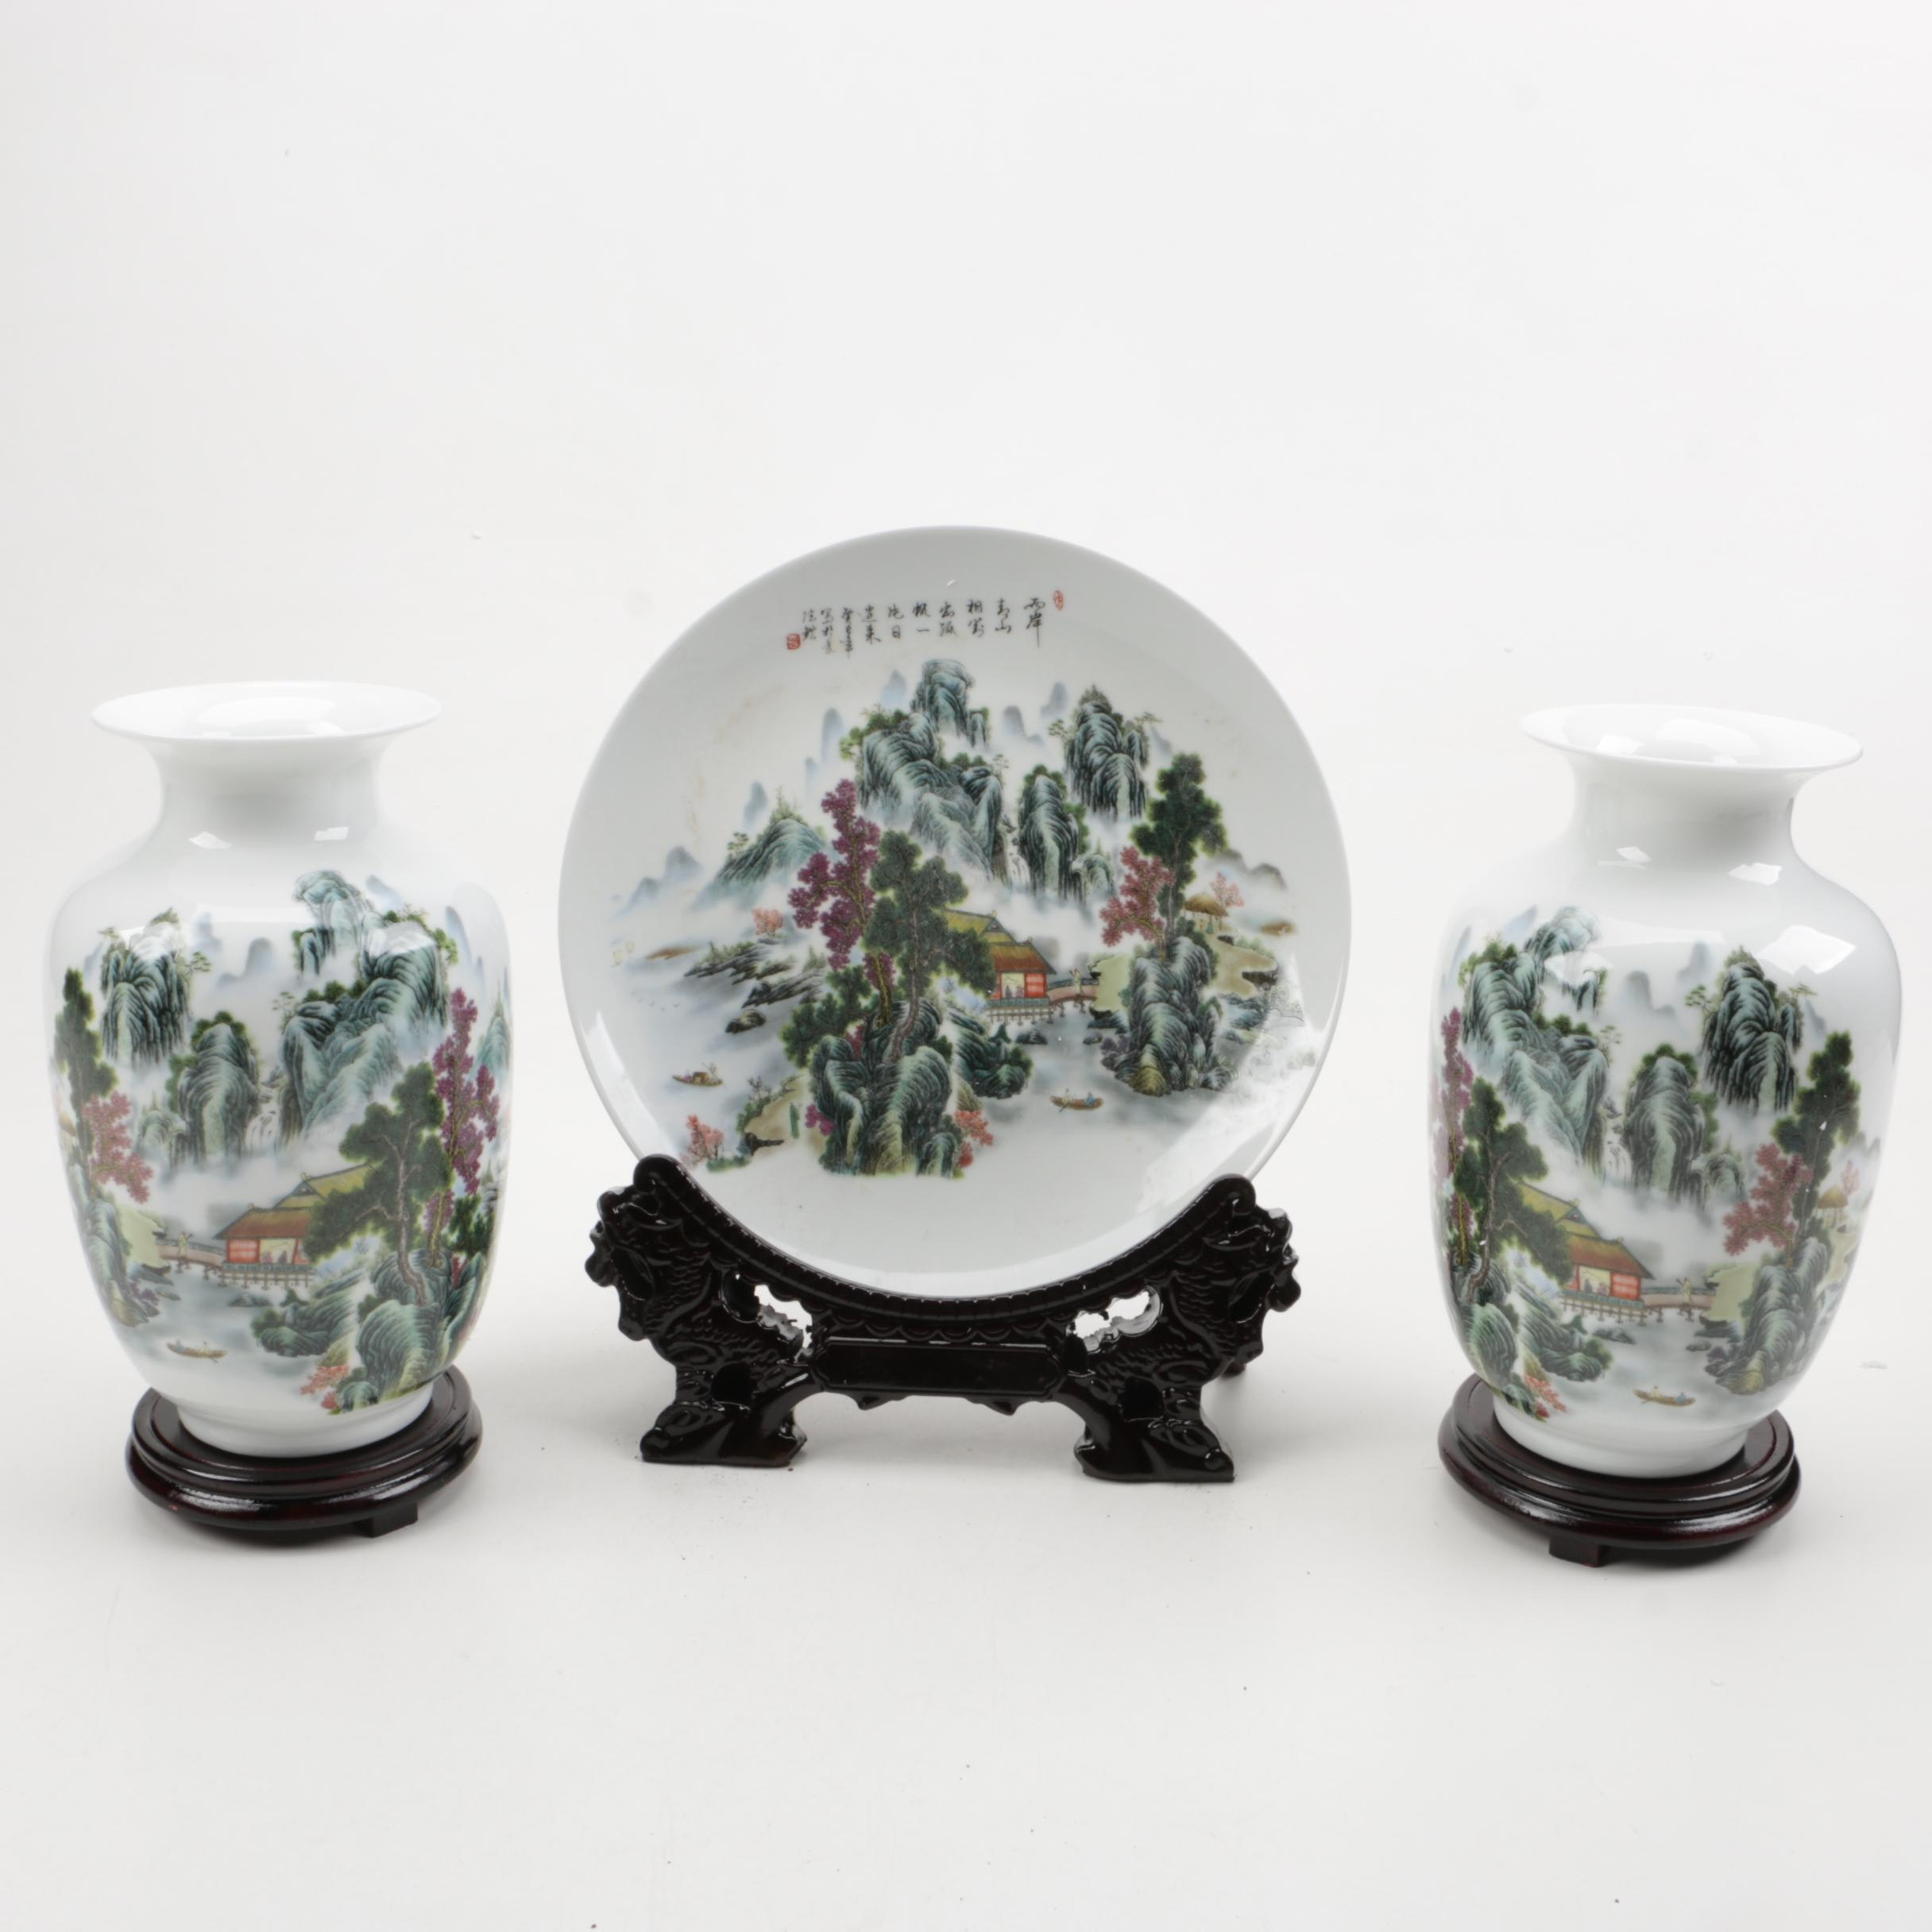 Collection of Chinese Vases and a Matching Plate